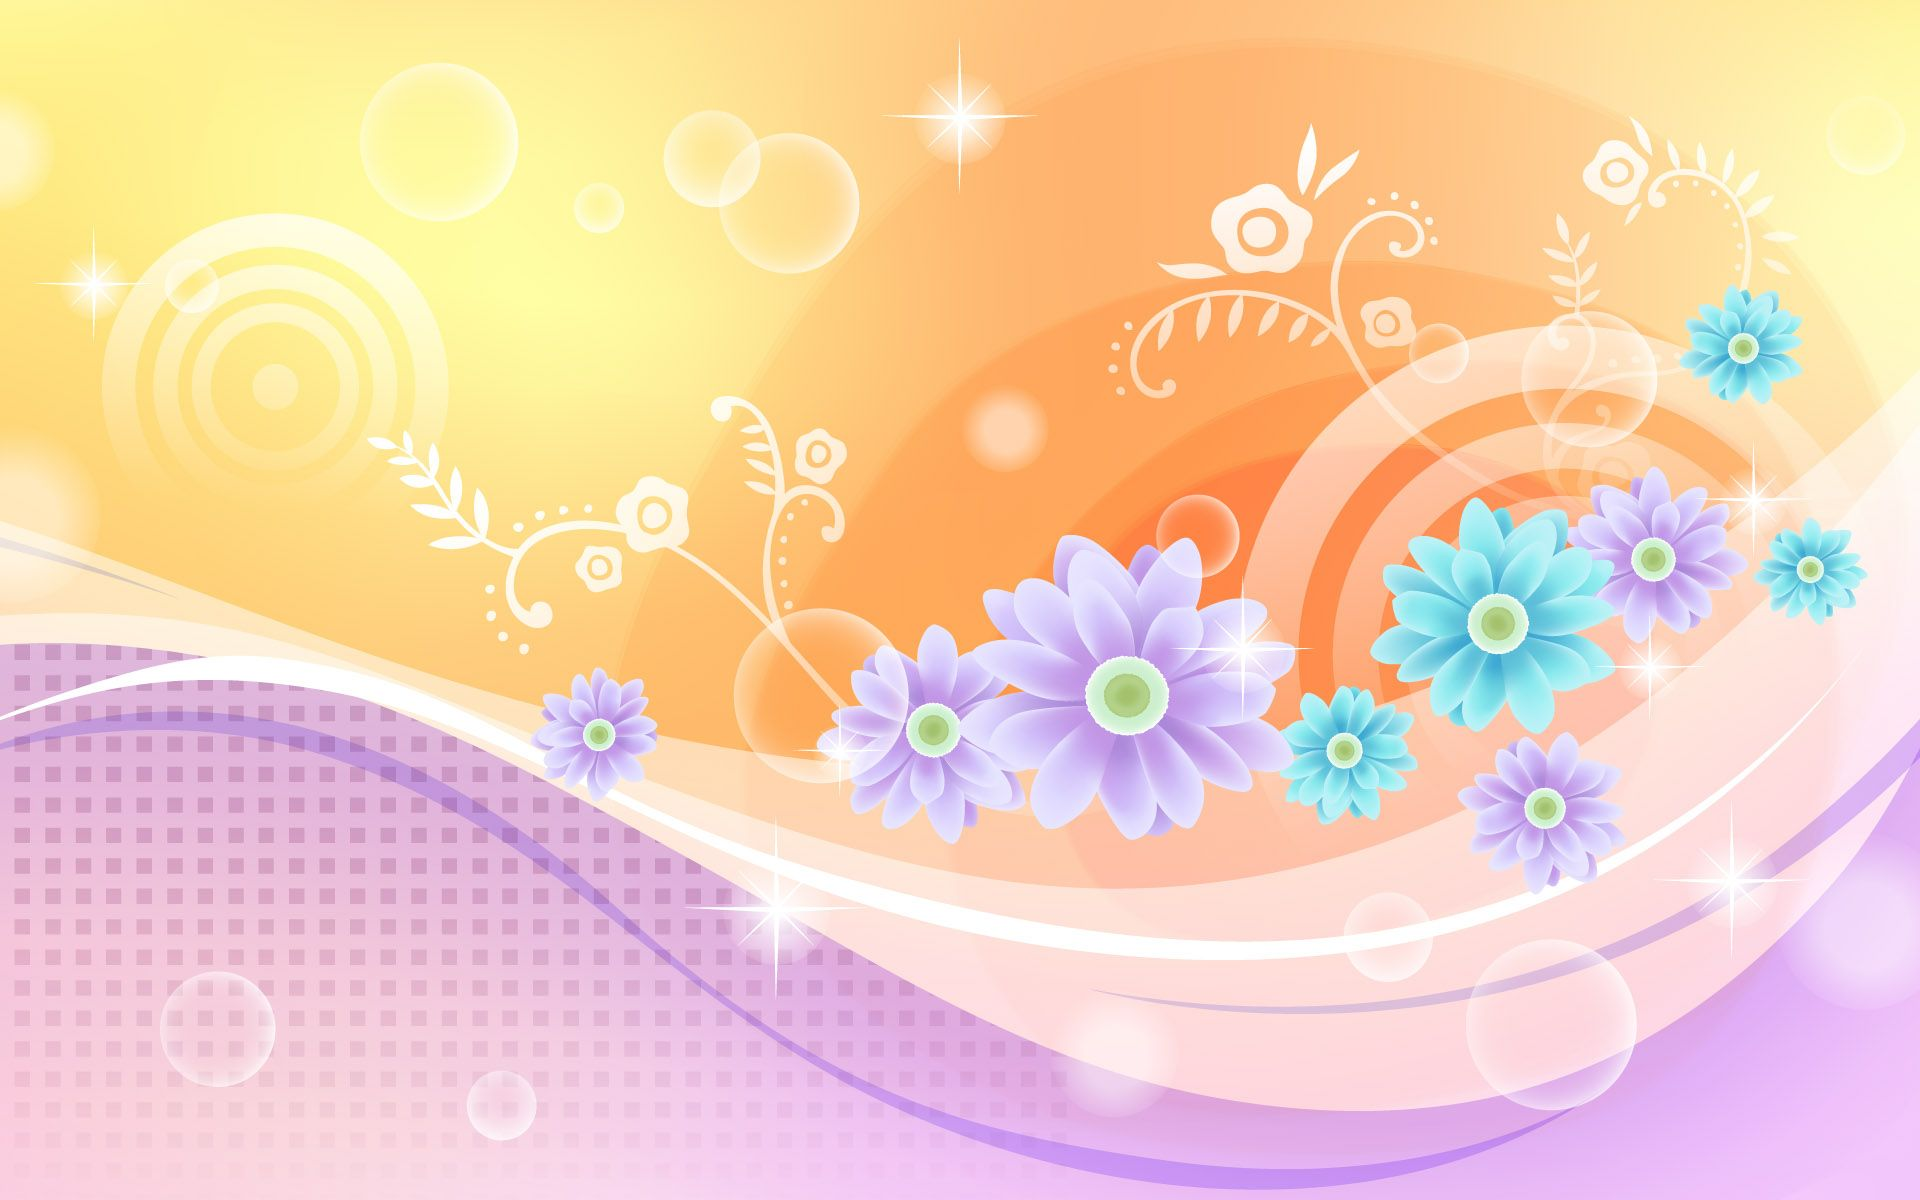 Abstract Flowers | 80 Abstract Flowers Design Wallpapers Photo 77 of ...